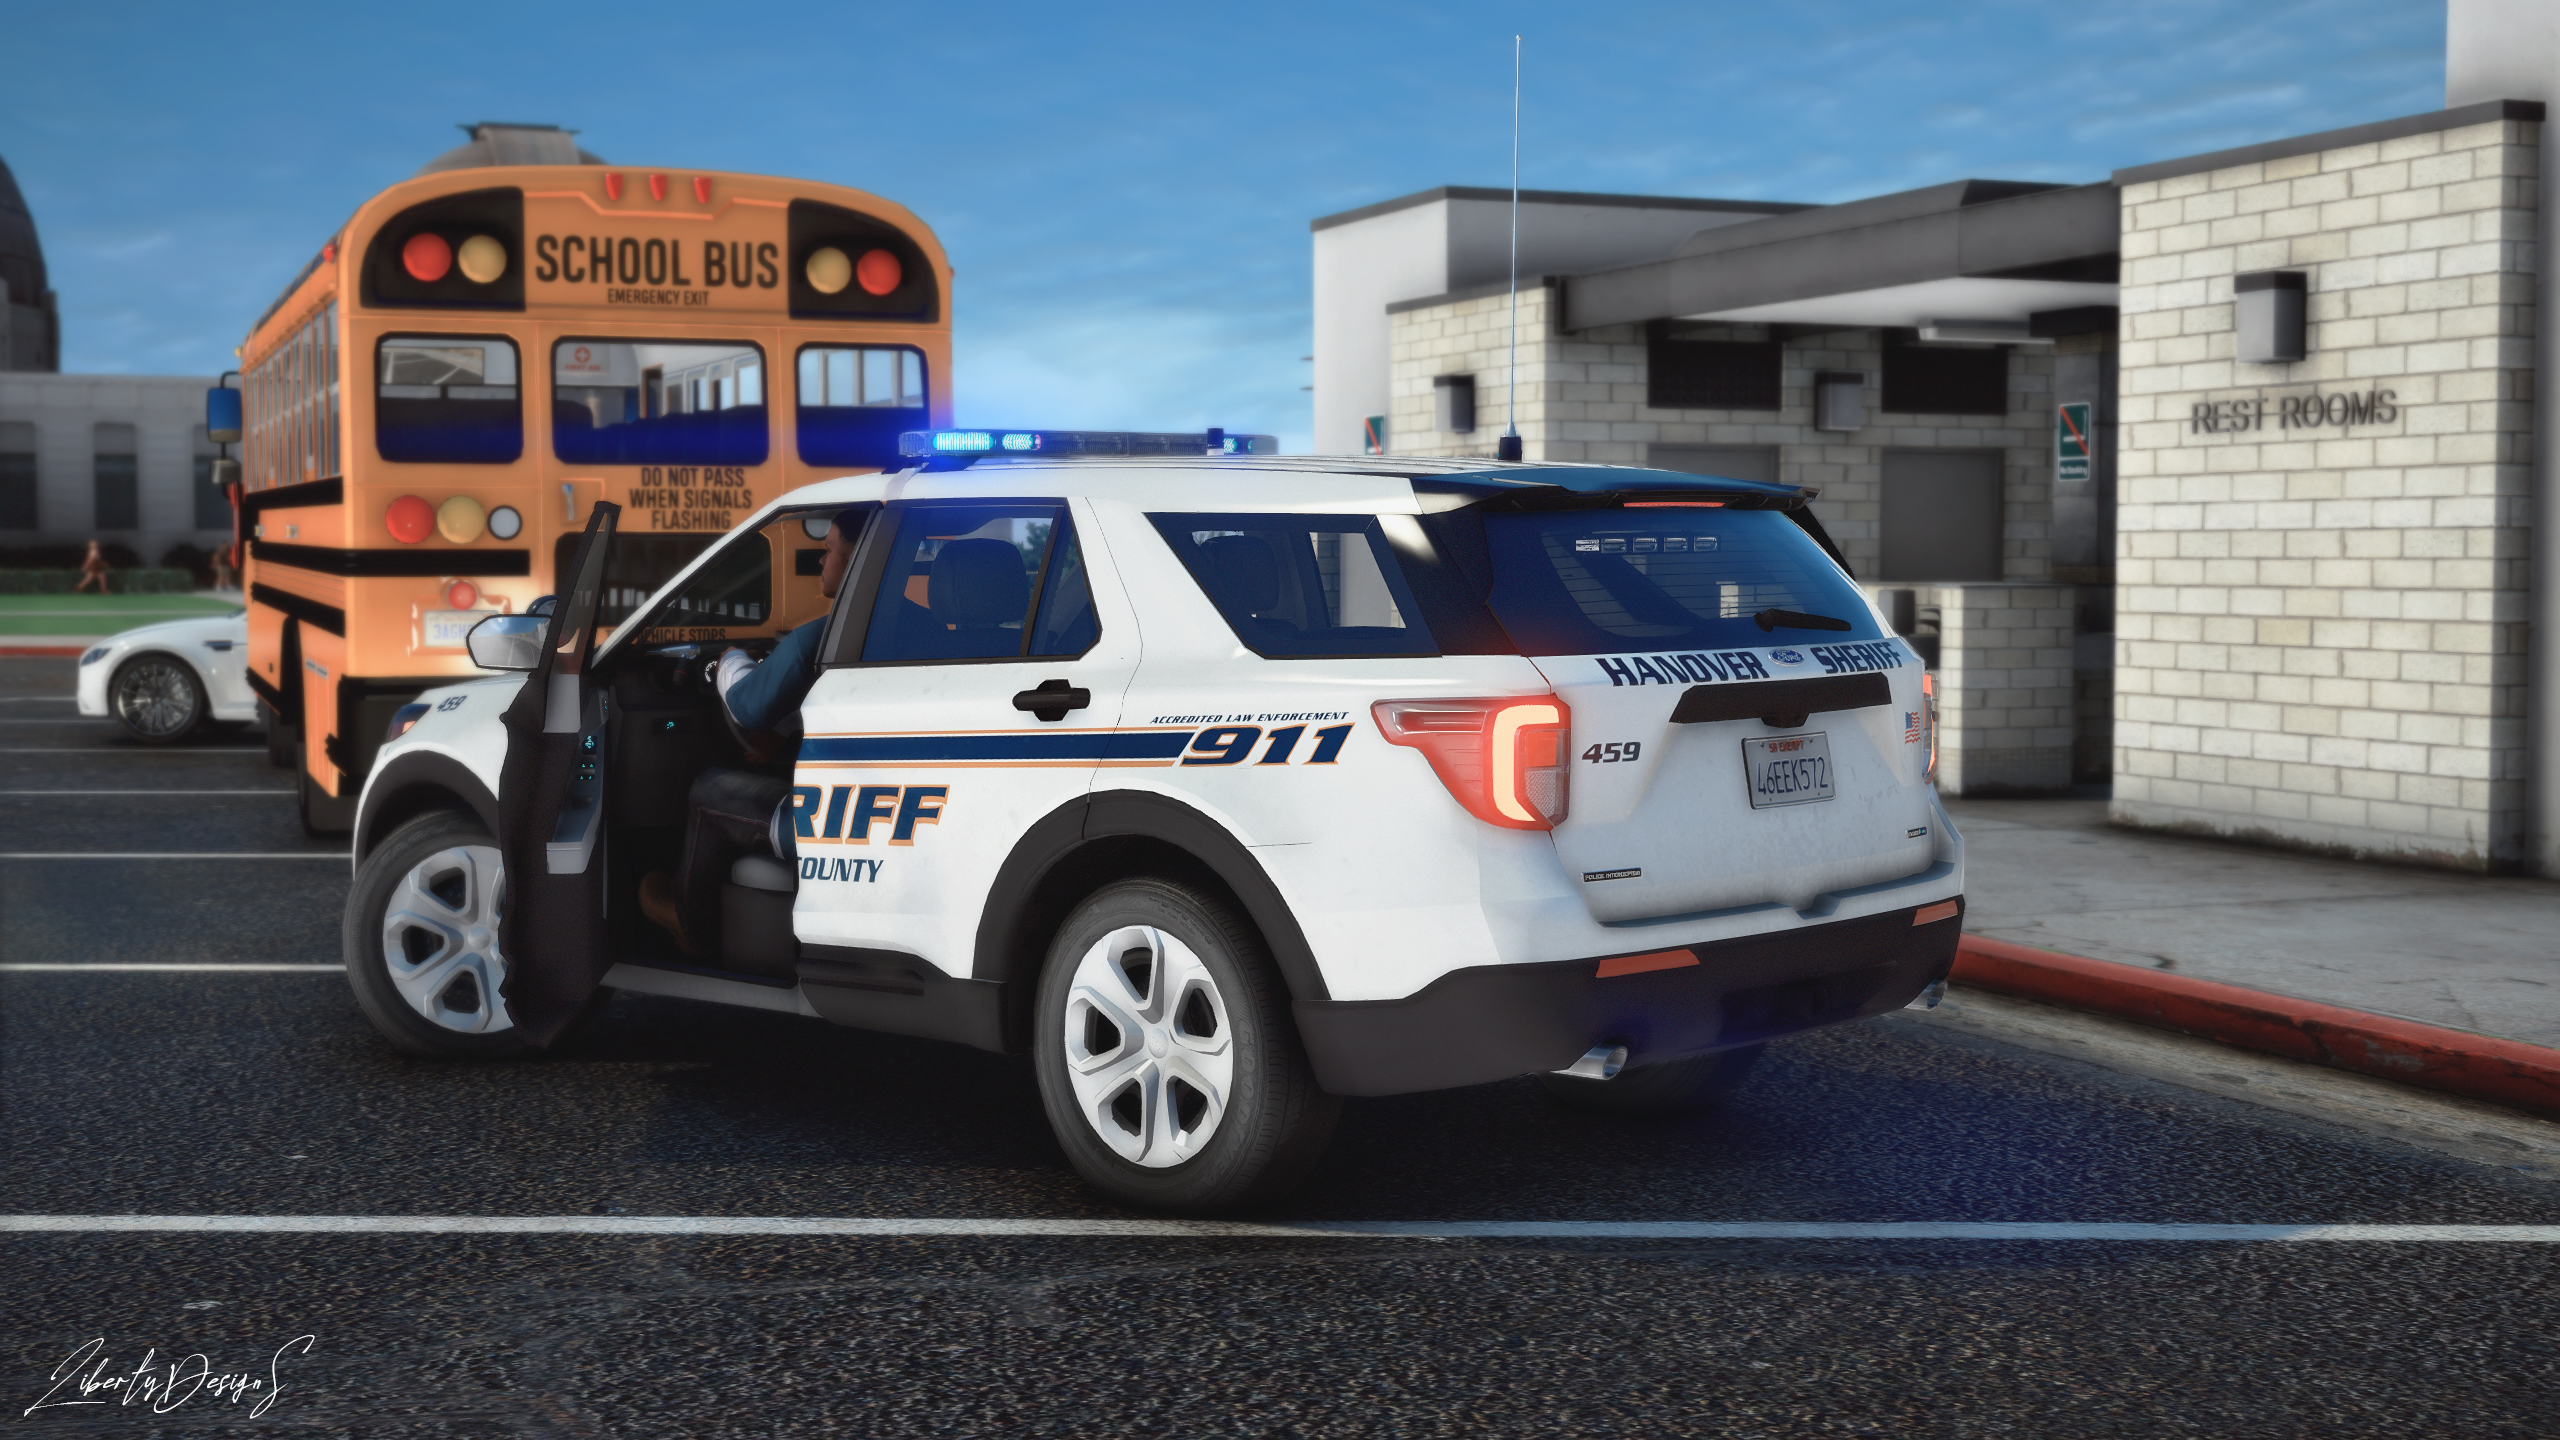 Hanover County Sheriff's Office | 2020 FPIU